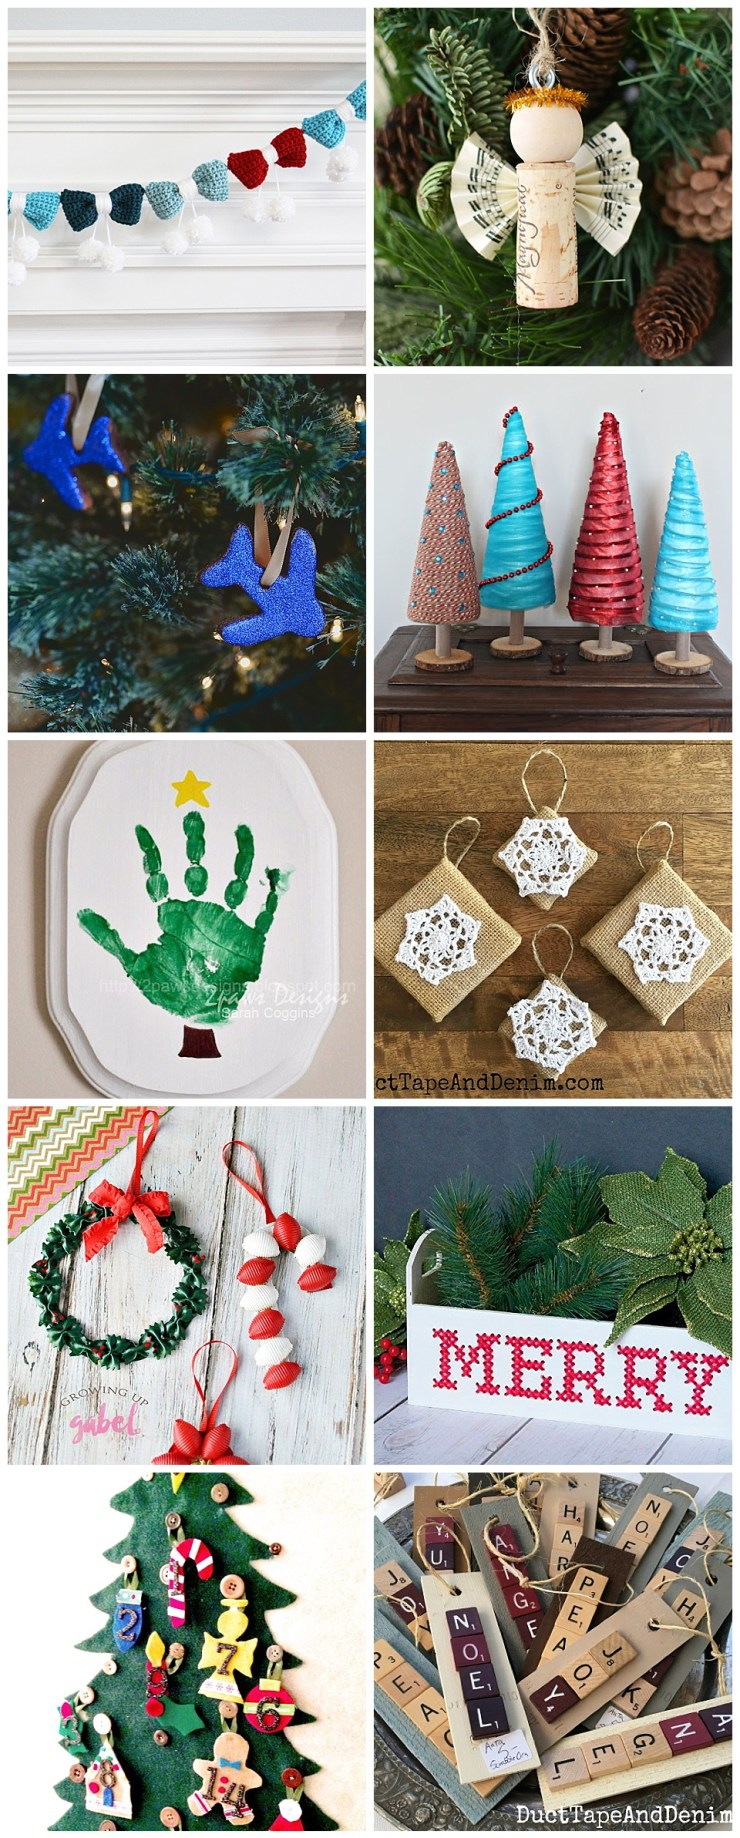 Christmas Crafts & DIY Ornaments